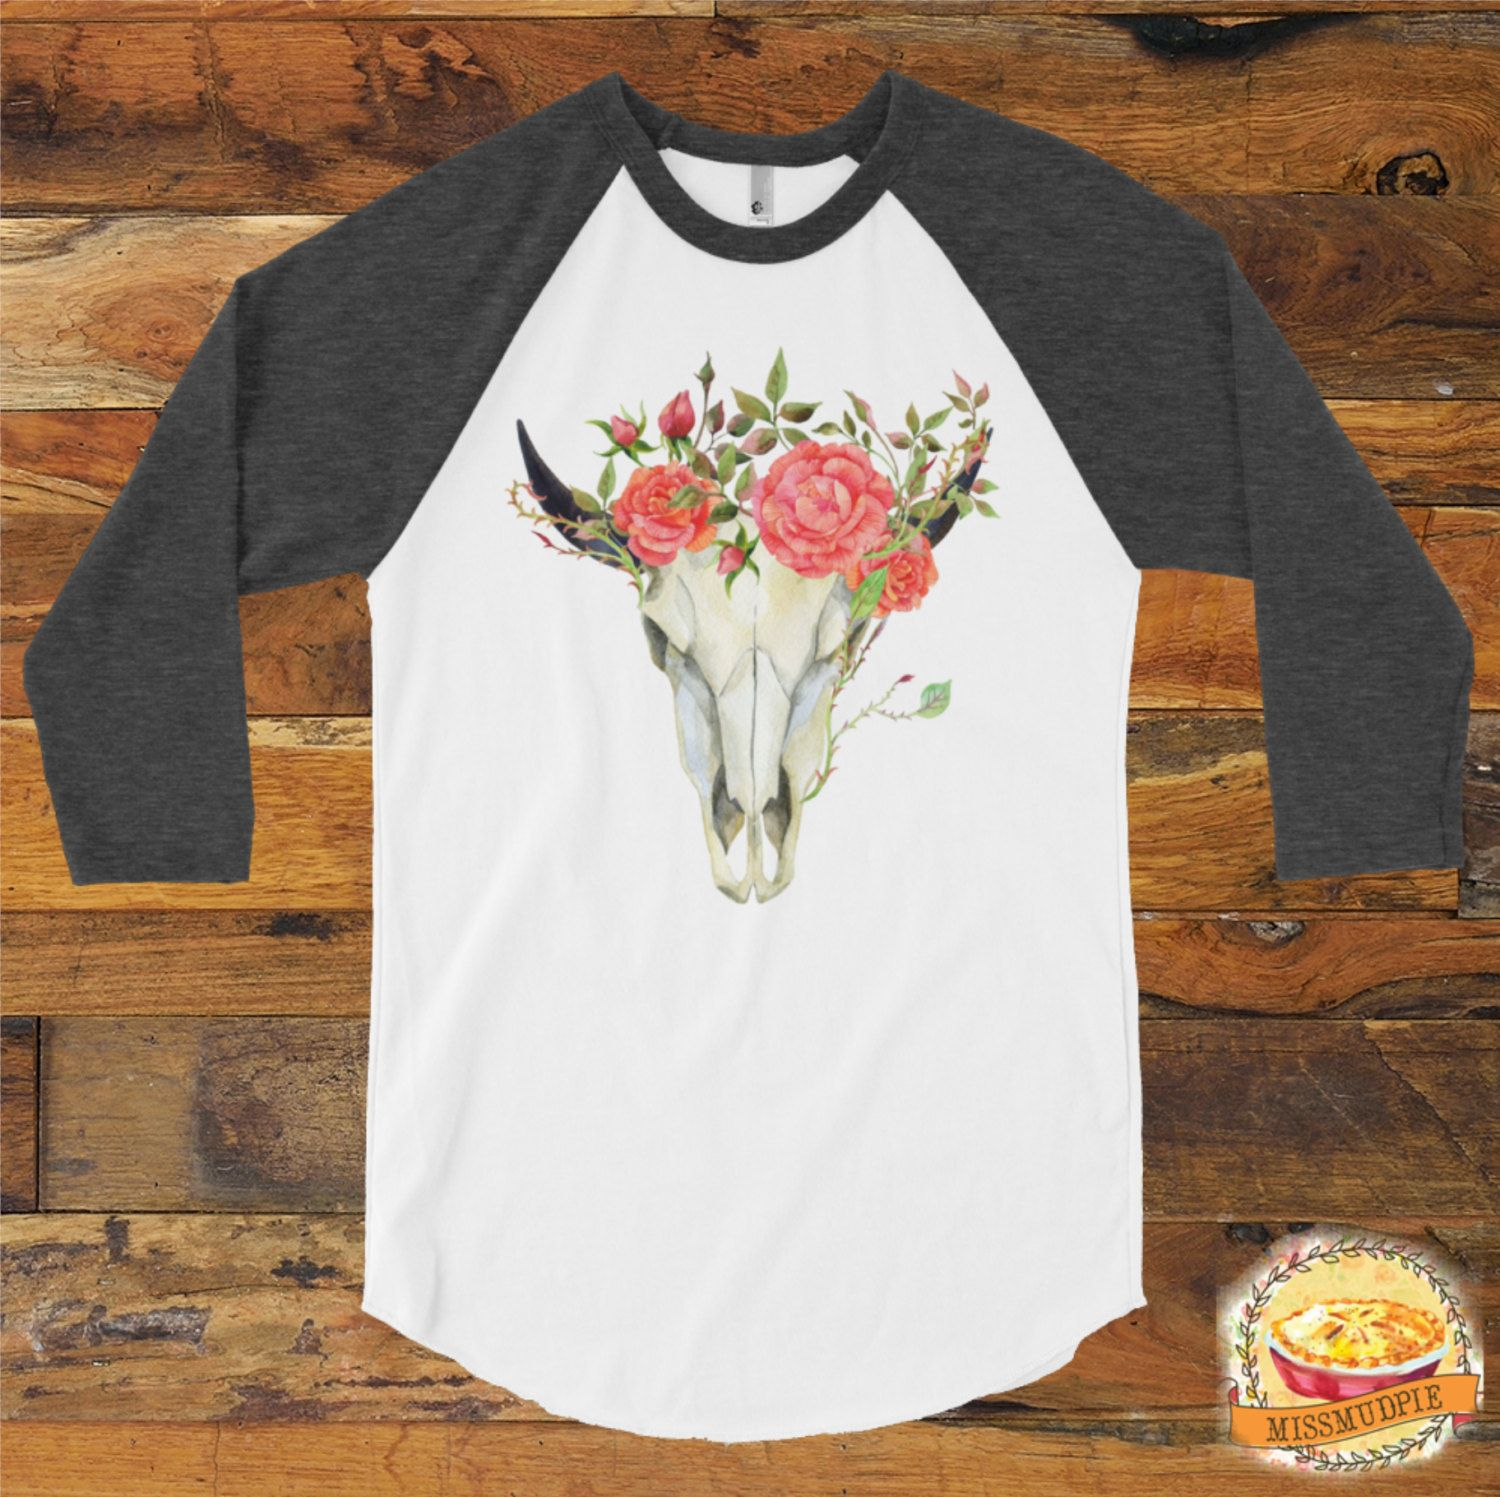 dd00af789 Bohemian Cow Skull with pink flowers raglan 3/4 arm length shirt. Perfect  for fall. Grey or Navy sleeve available. Popular for fall by missmudpie on  Etsy